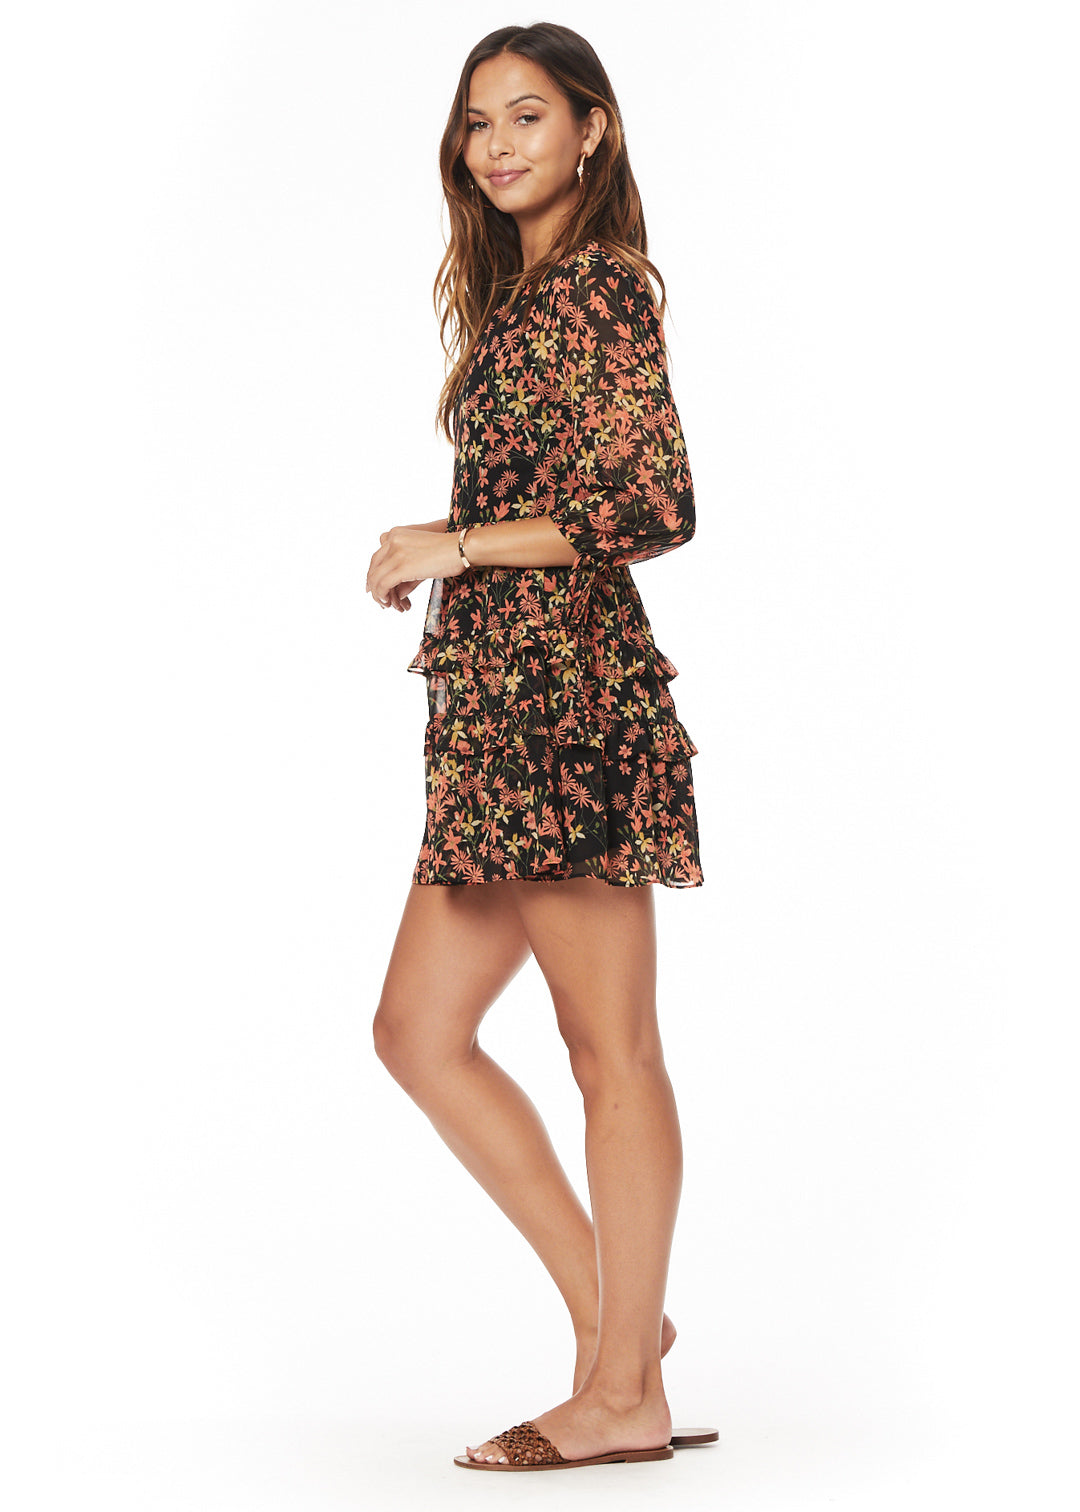 Santa Catalina Mini Dress